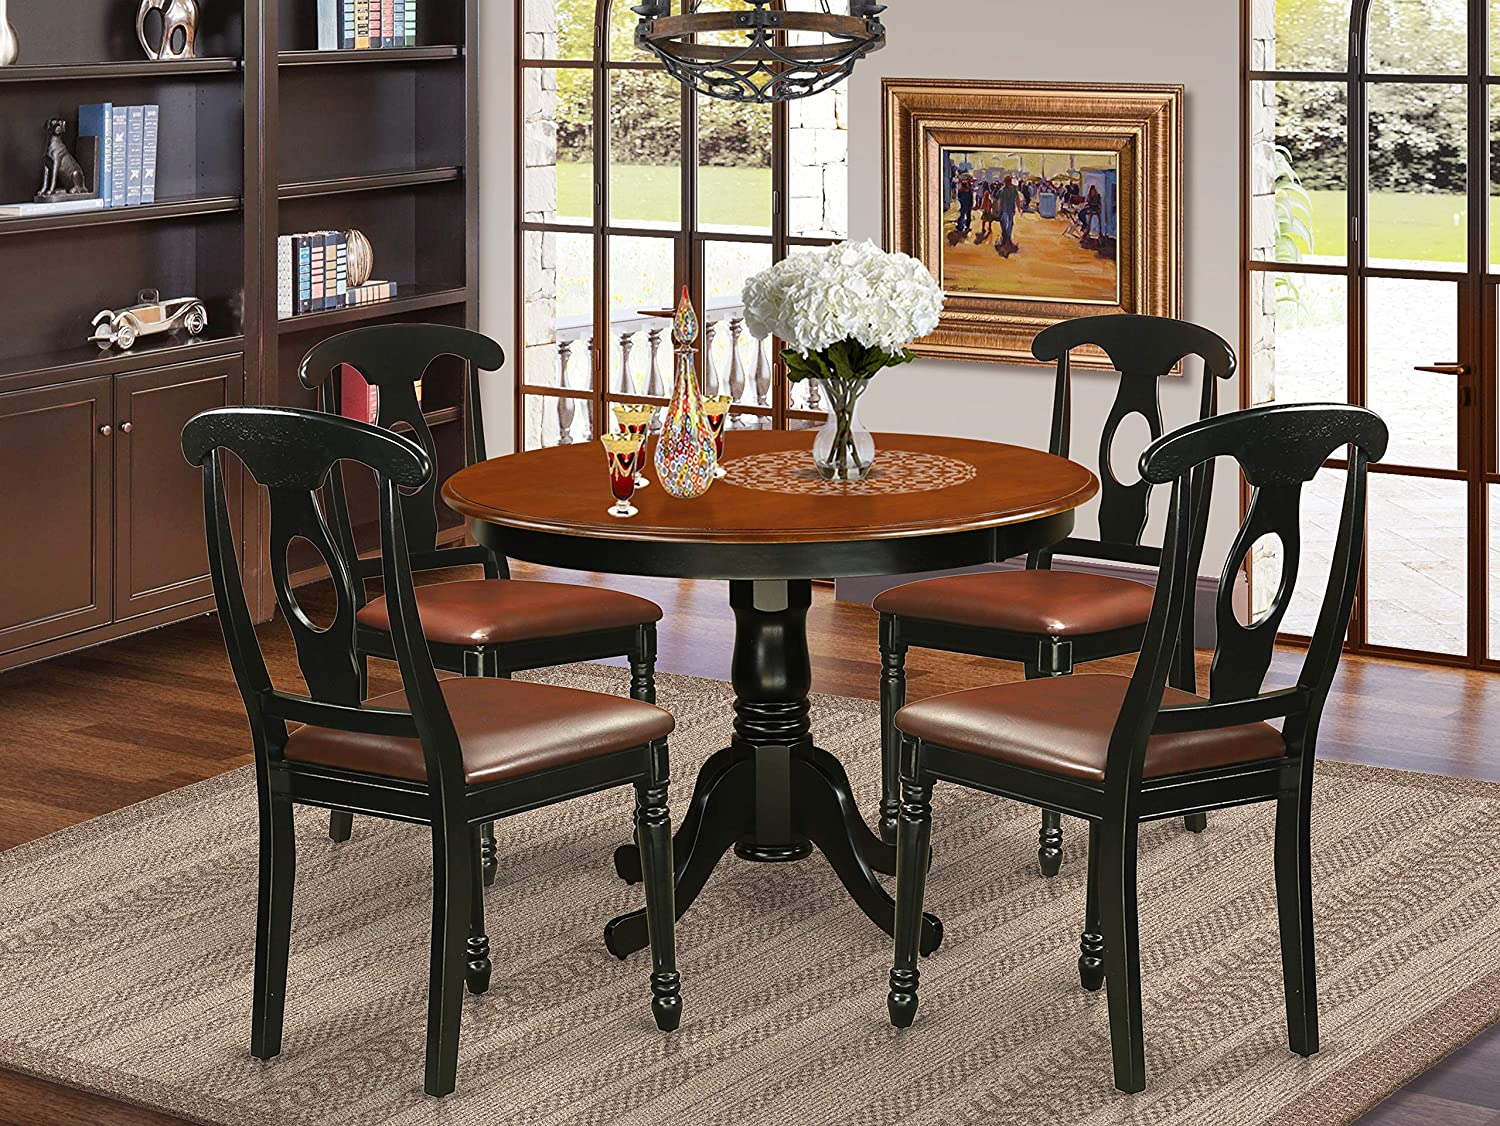 5 Pc Dining set-Round Table and 4 Kitchen Chairs